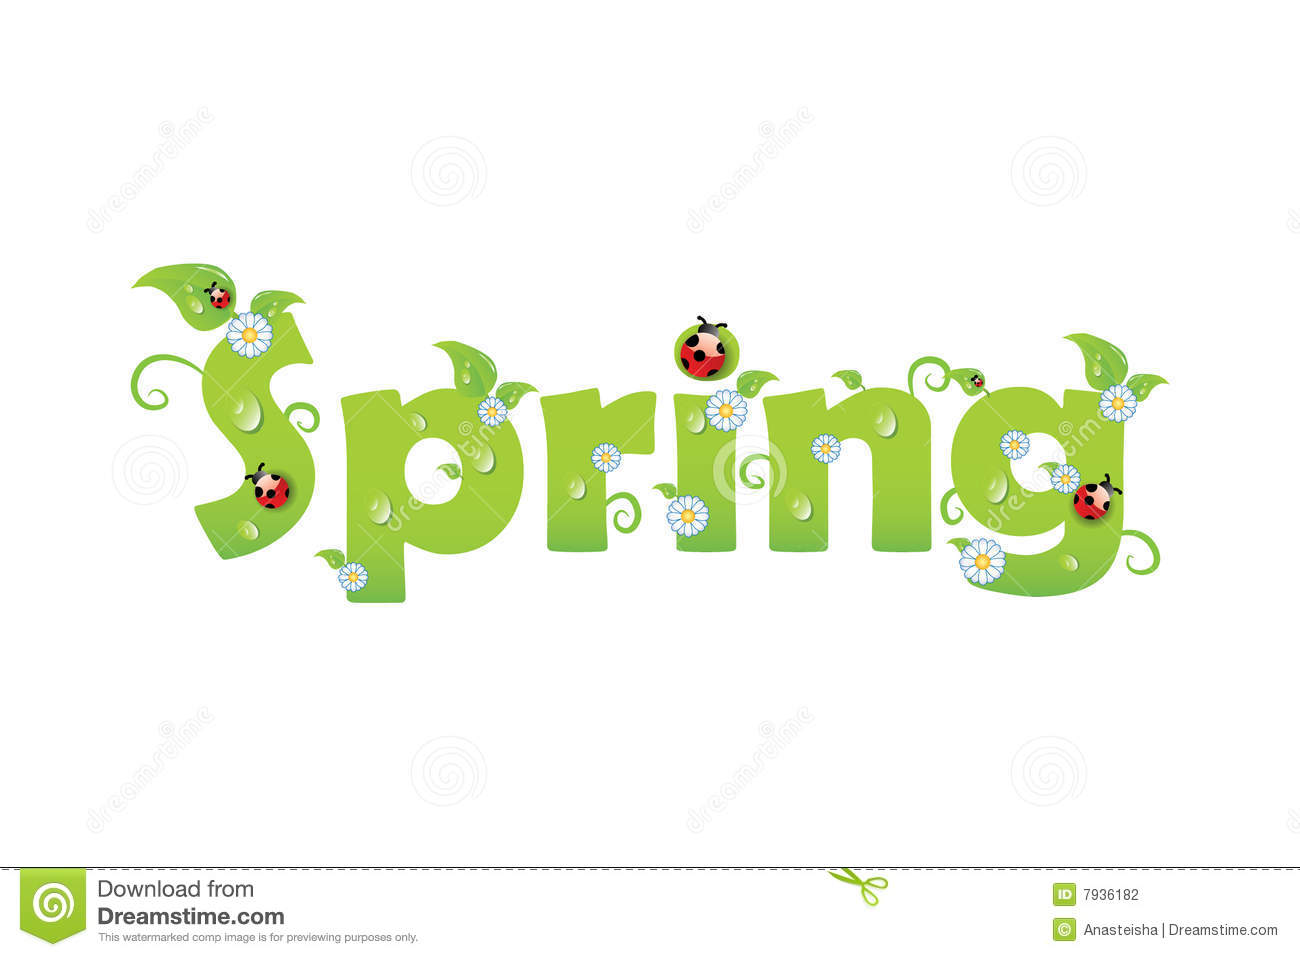 Spring Letters Stock Photography - Image: 7936182: www.dreamstime.com/stock-photography-spring-letters-image7936182